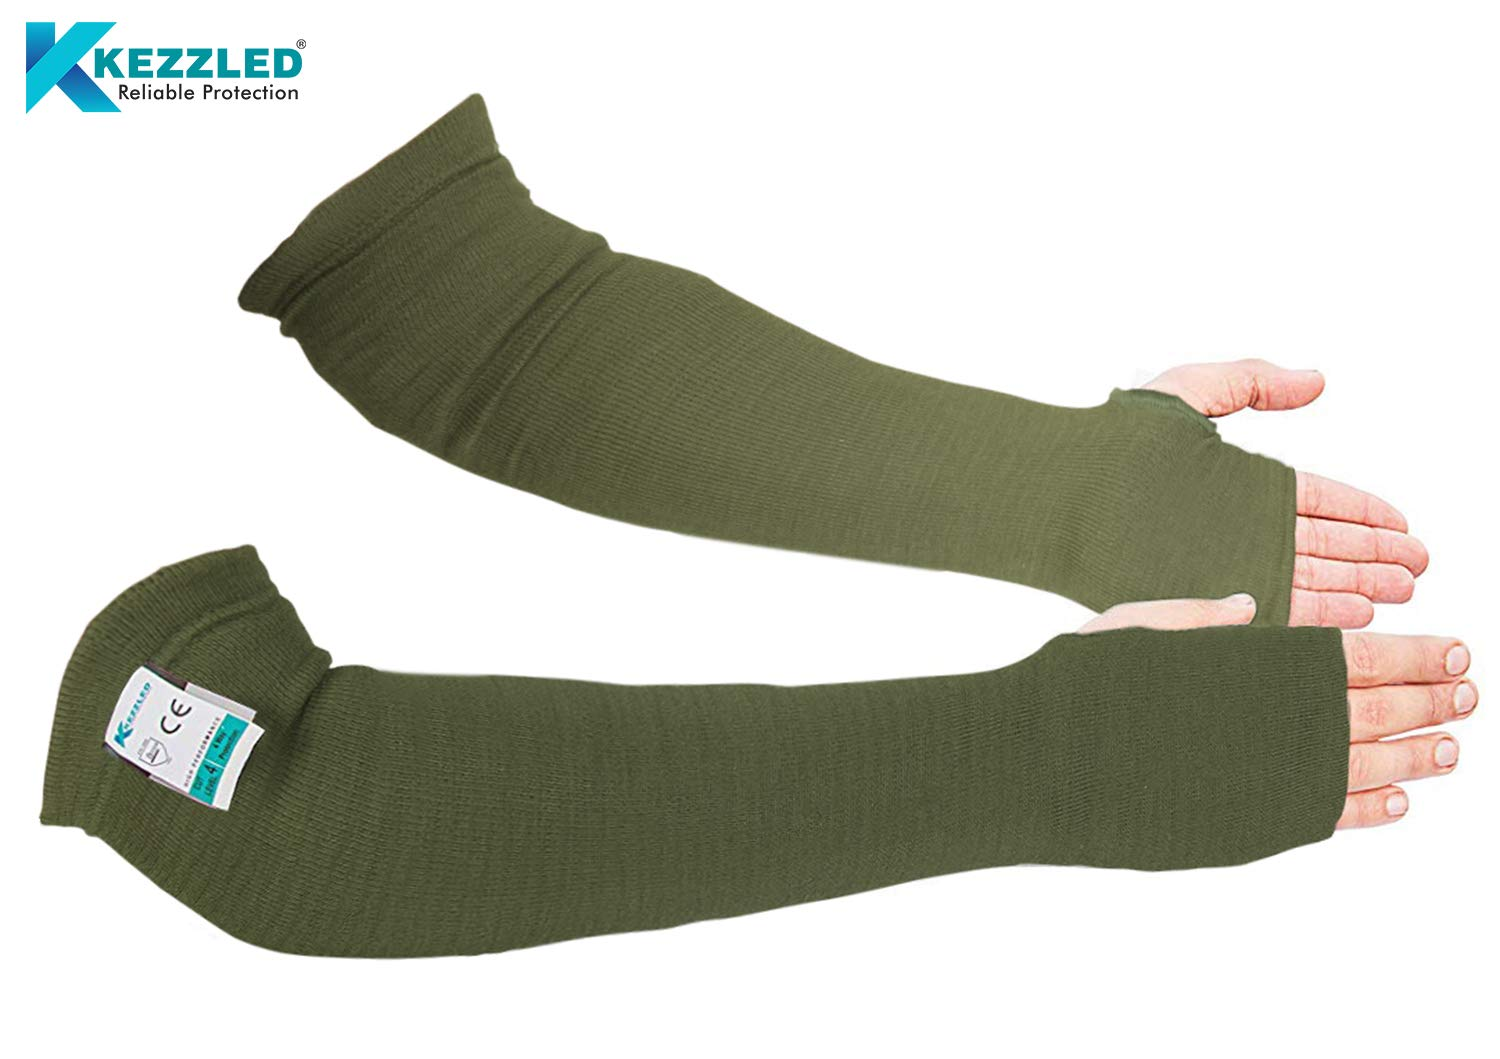 Kevlar Sleeves- Heat, Scratch & Cut Resistant Arm Sleeves with Thumb Holes- Arm Safety Sleeves- Long Arm Protectors- Flexible, Lightweight, Washable- 18 Inches, Sage Green, 1 Pair